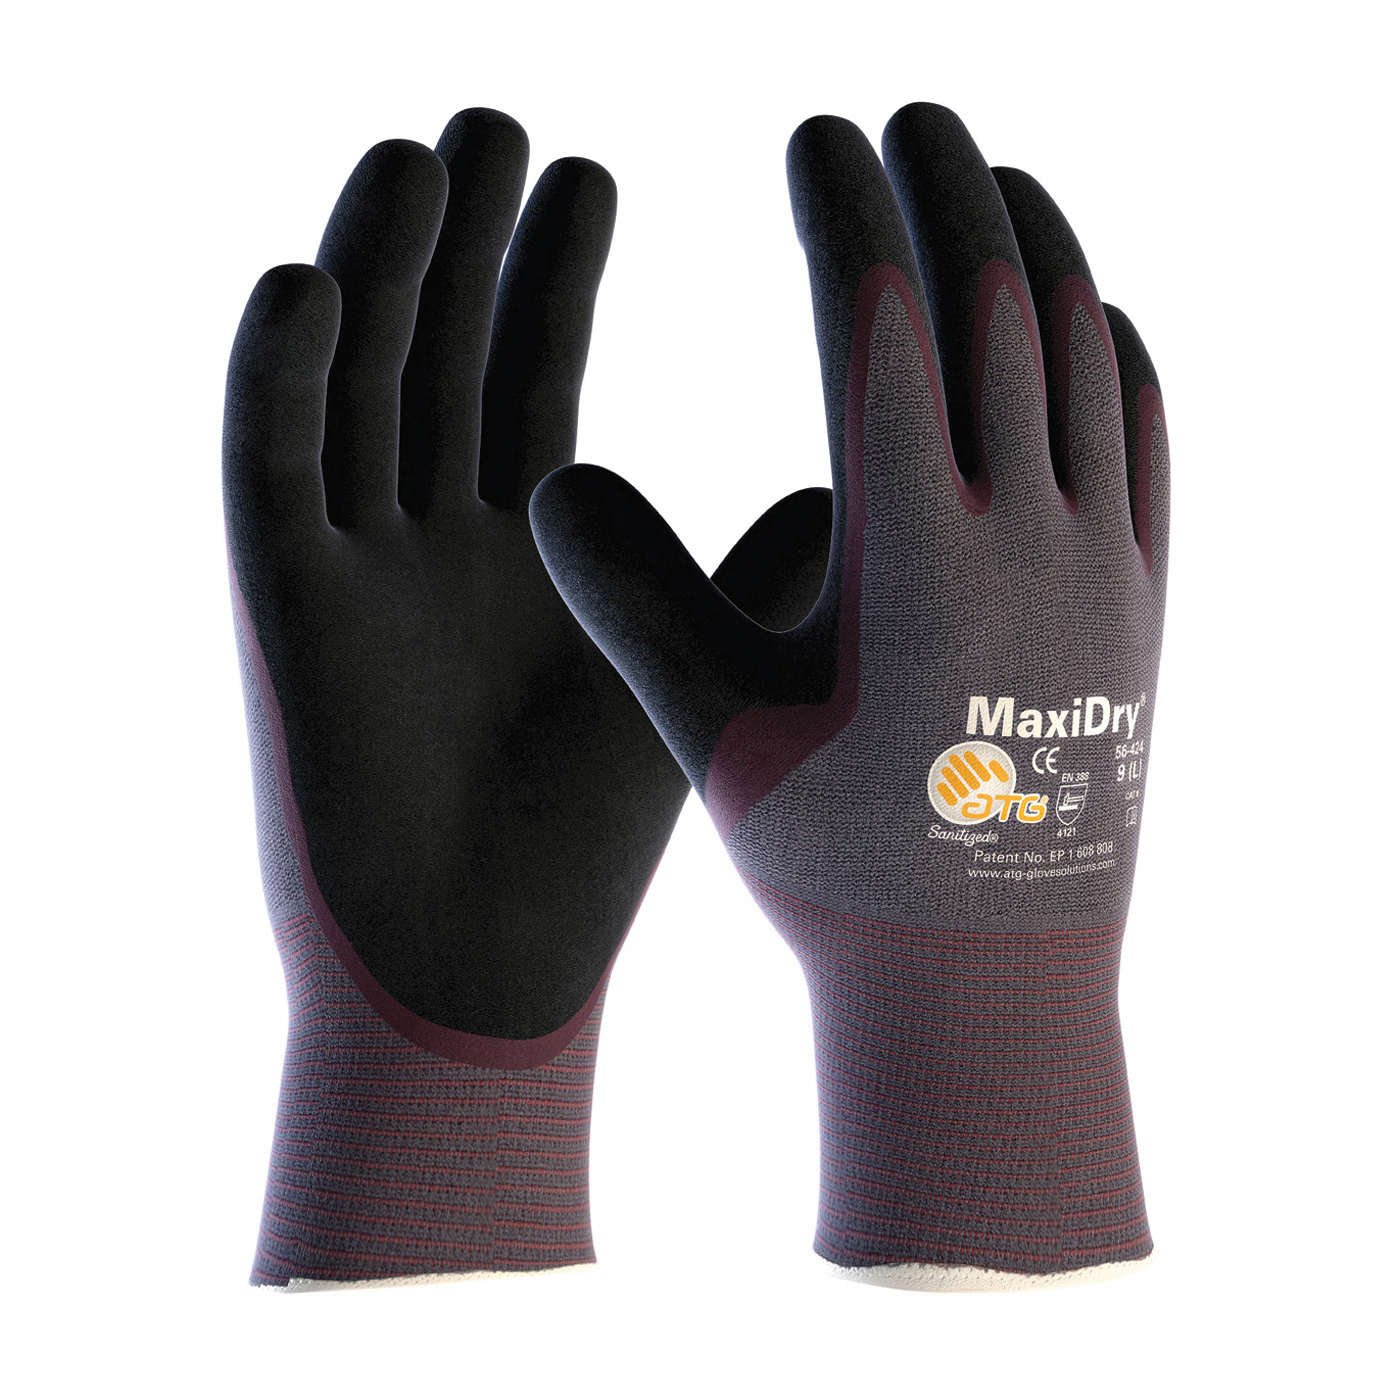 ATG® MaxiDry® 56-424/XXL High Performance General Purpose Gloves, Coated, 2XL, Nylon Palm, Nylon, Black/Purple, Continuous Knit Wrist Cuff, Nitrile Coating, Resists: Abrasion, Cut, Puncture and Tear, Nylon Lining, Seamless Knit